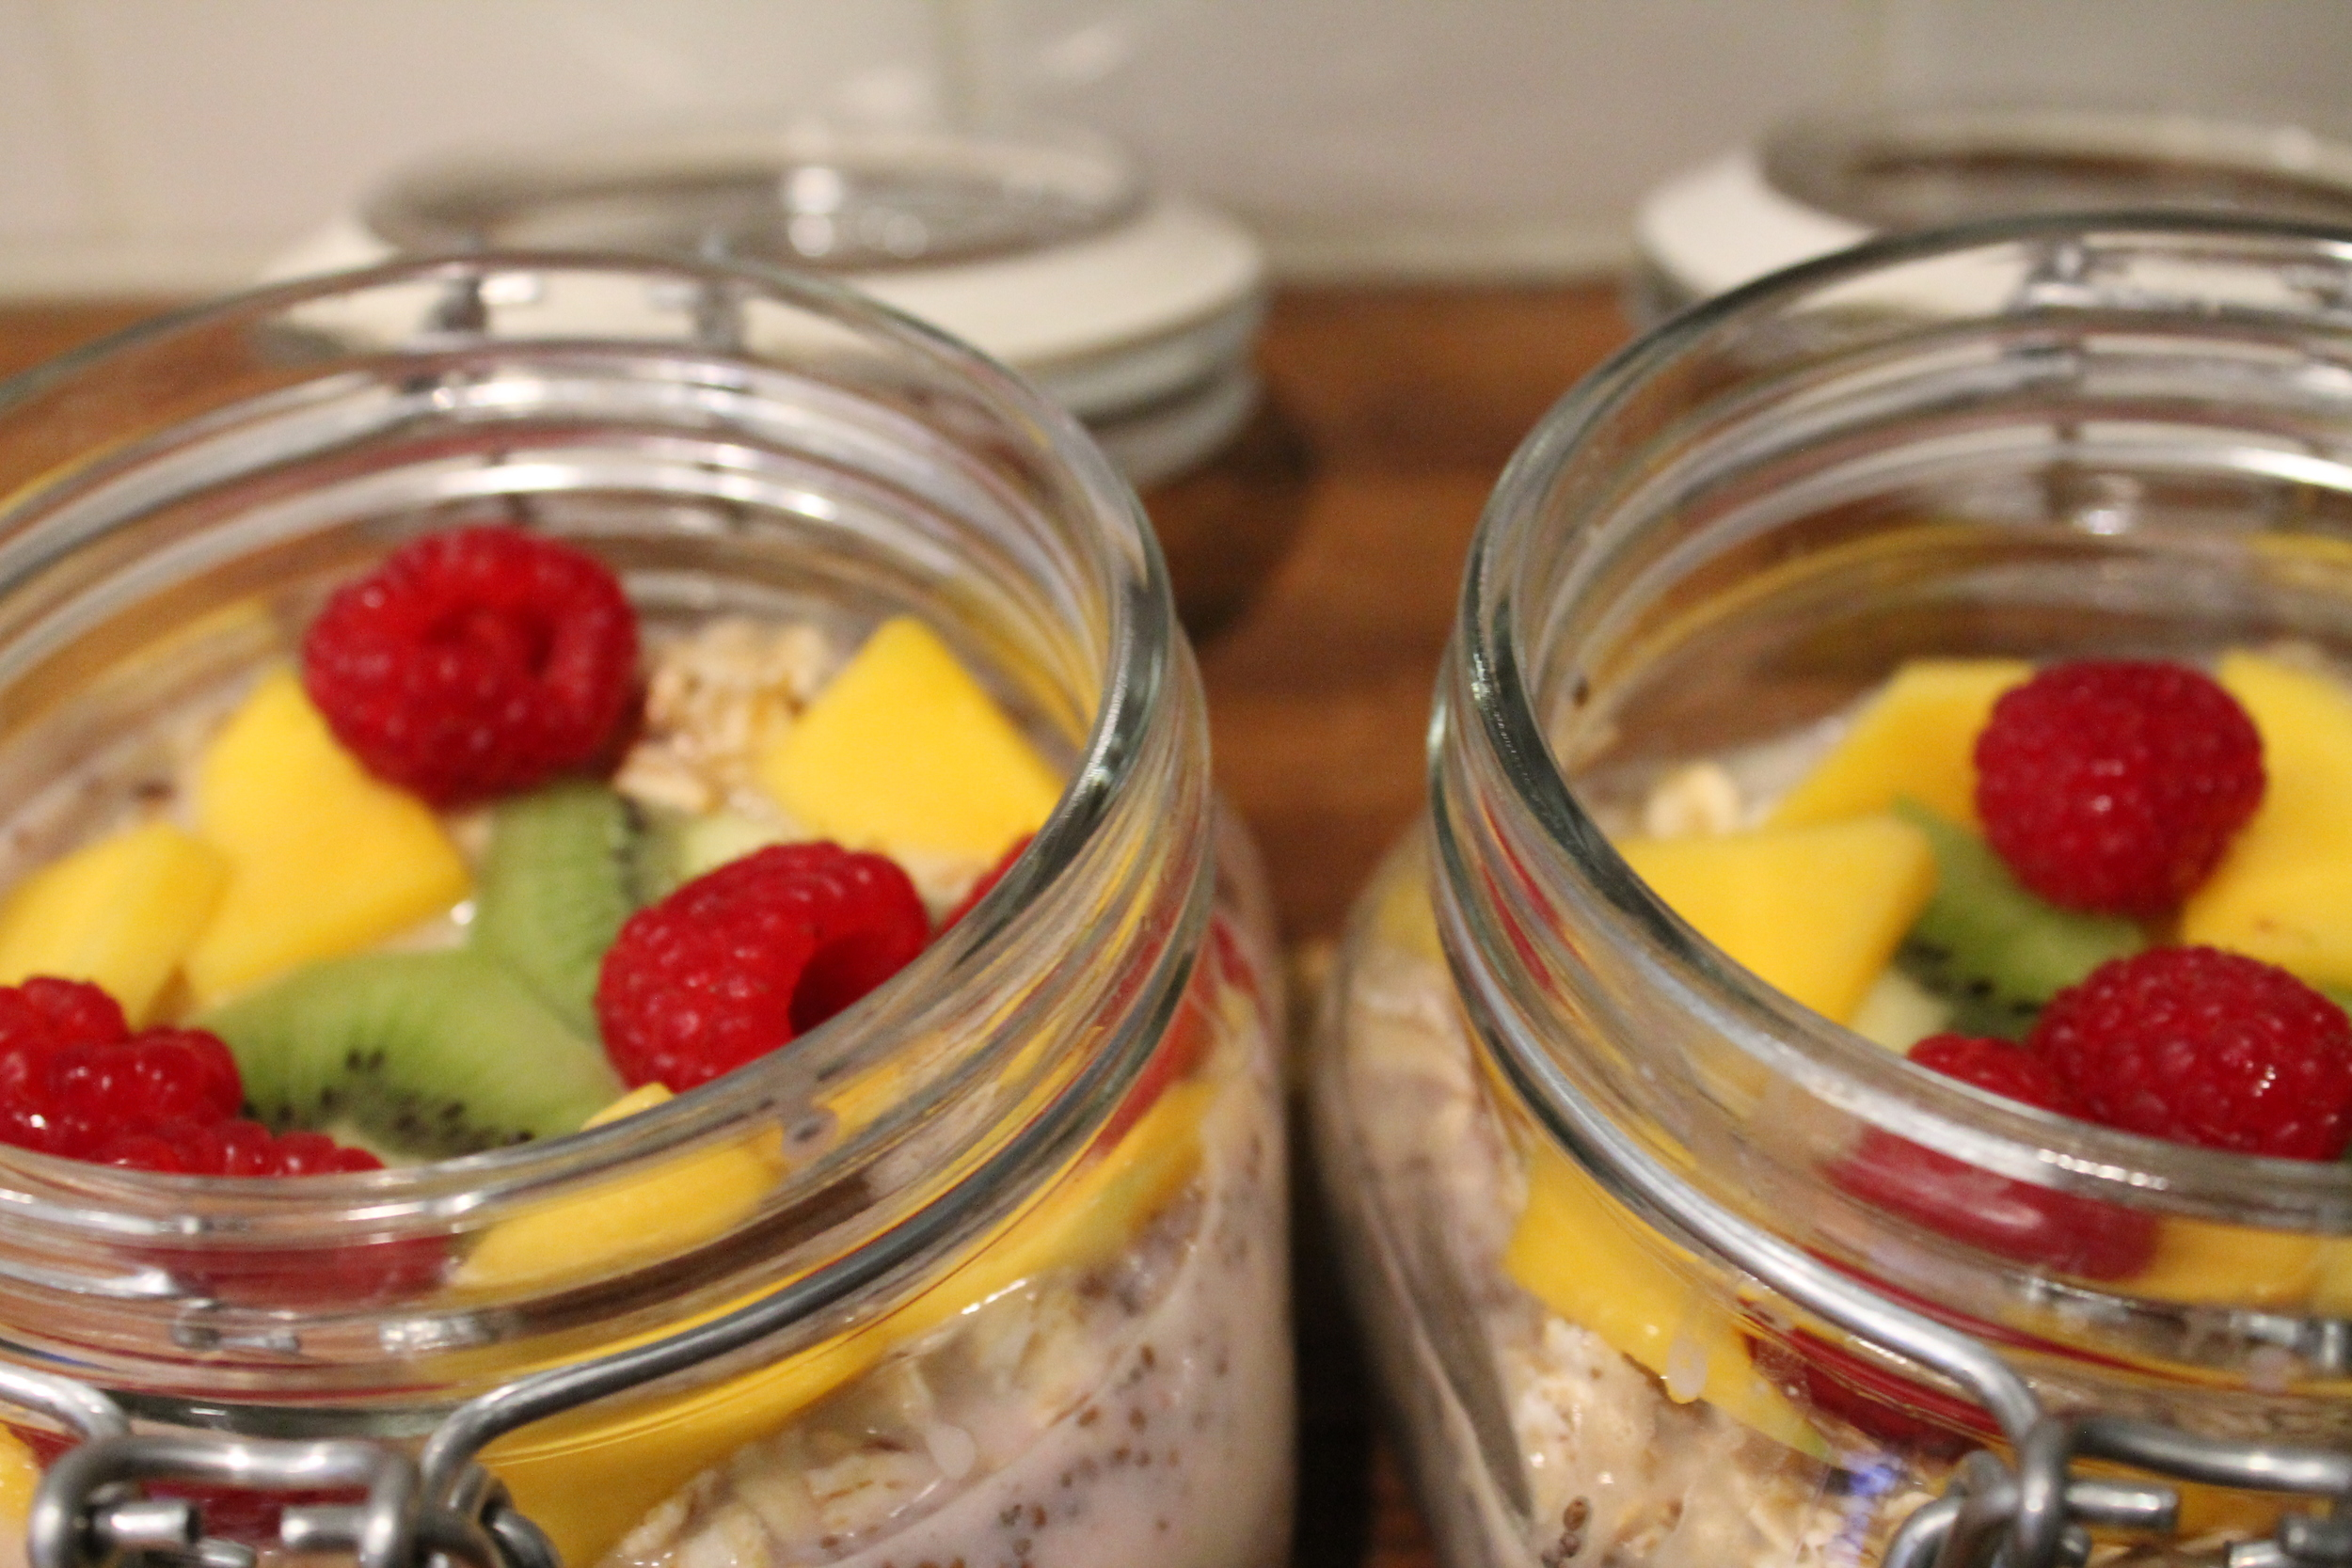 Gluten-free and Vegan Overnight Oats & Chia Seed Parfait with Fresh Fruit. Healthy and satisfying breakfast on the go from www.fernsandpeonies.com Vist the website to download your free guide on living a healthy and compassionate lifestyle!